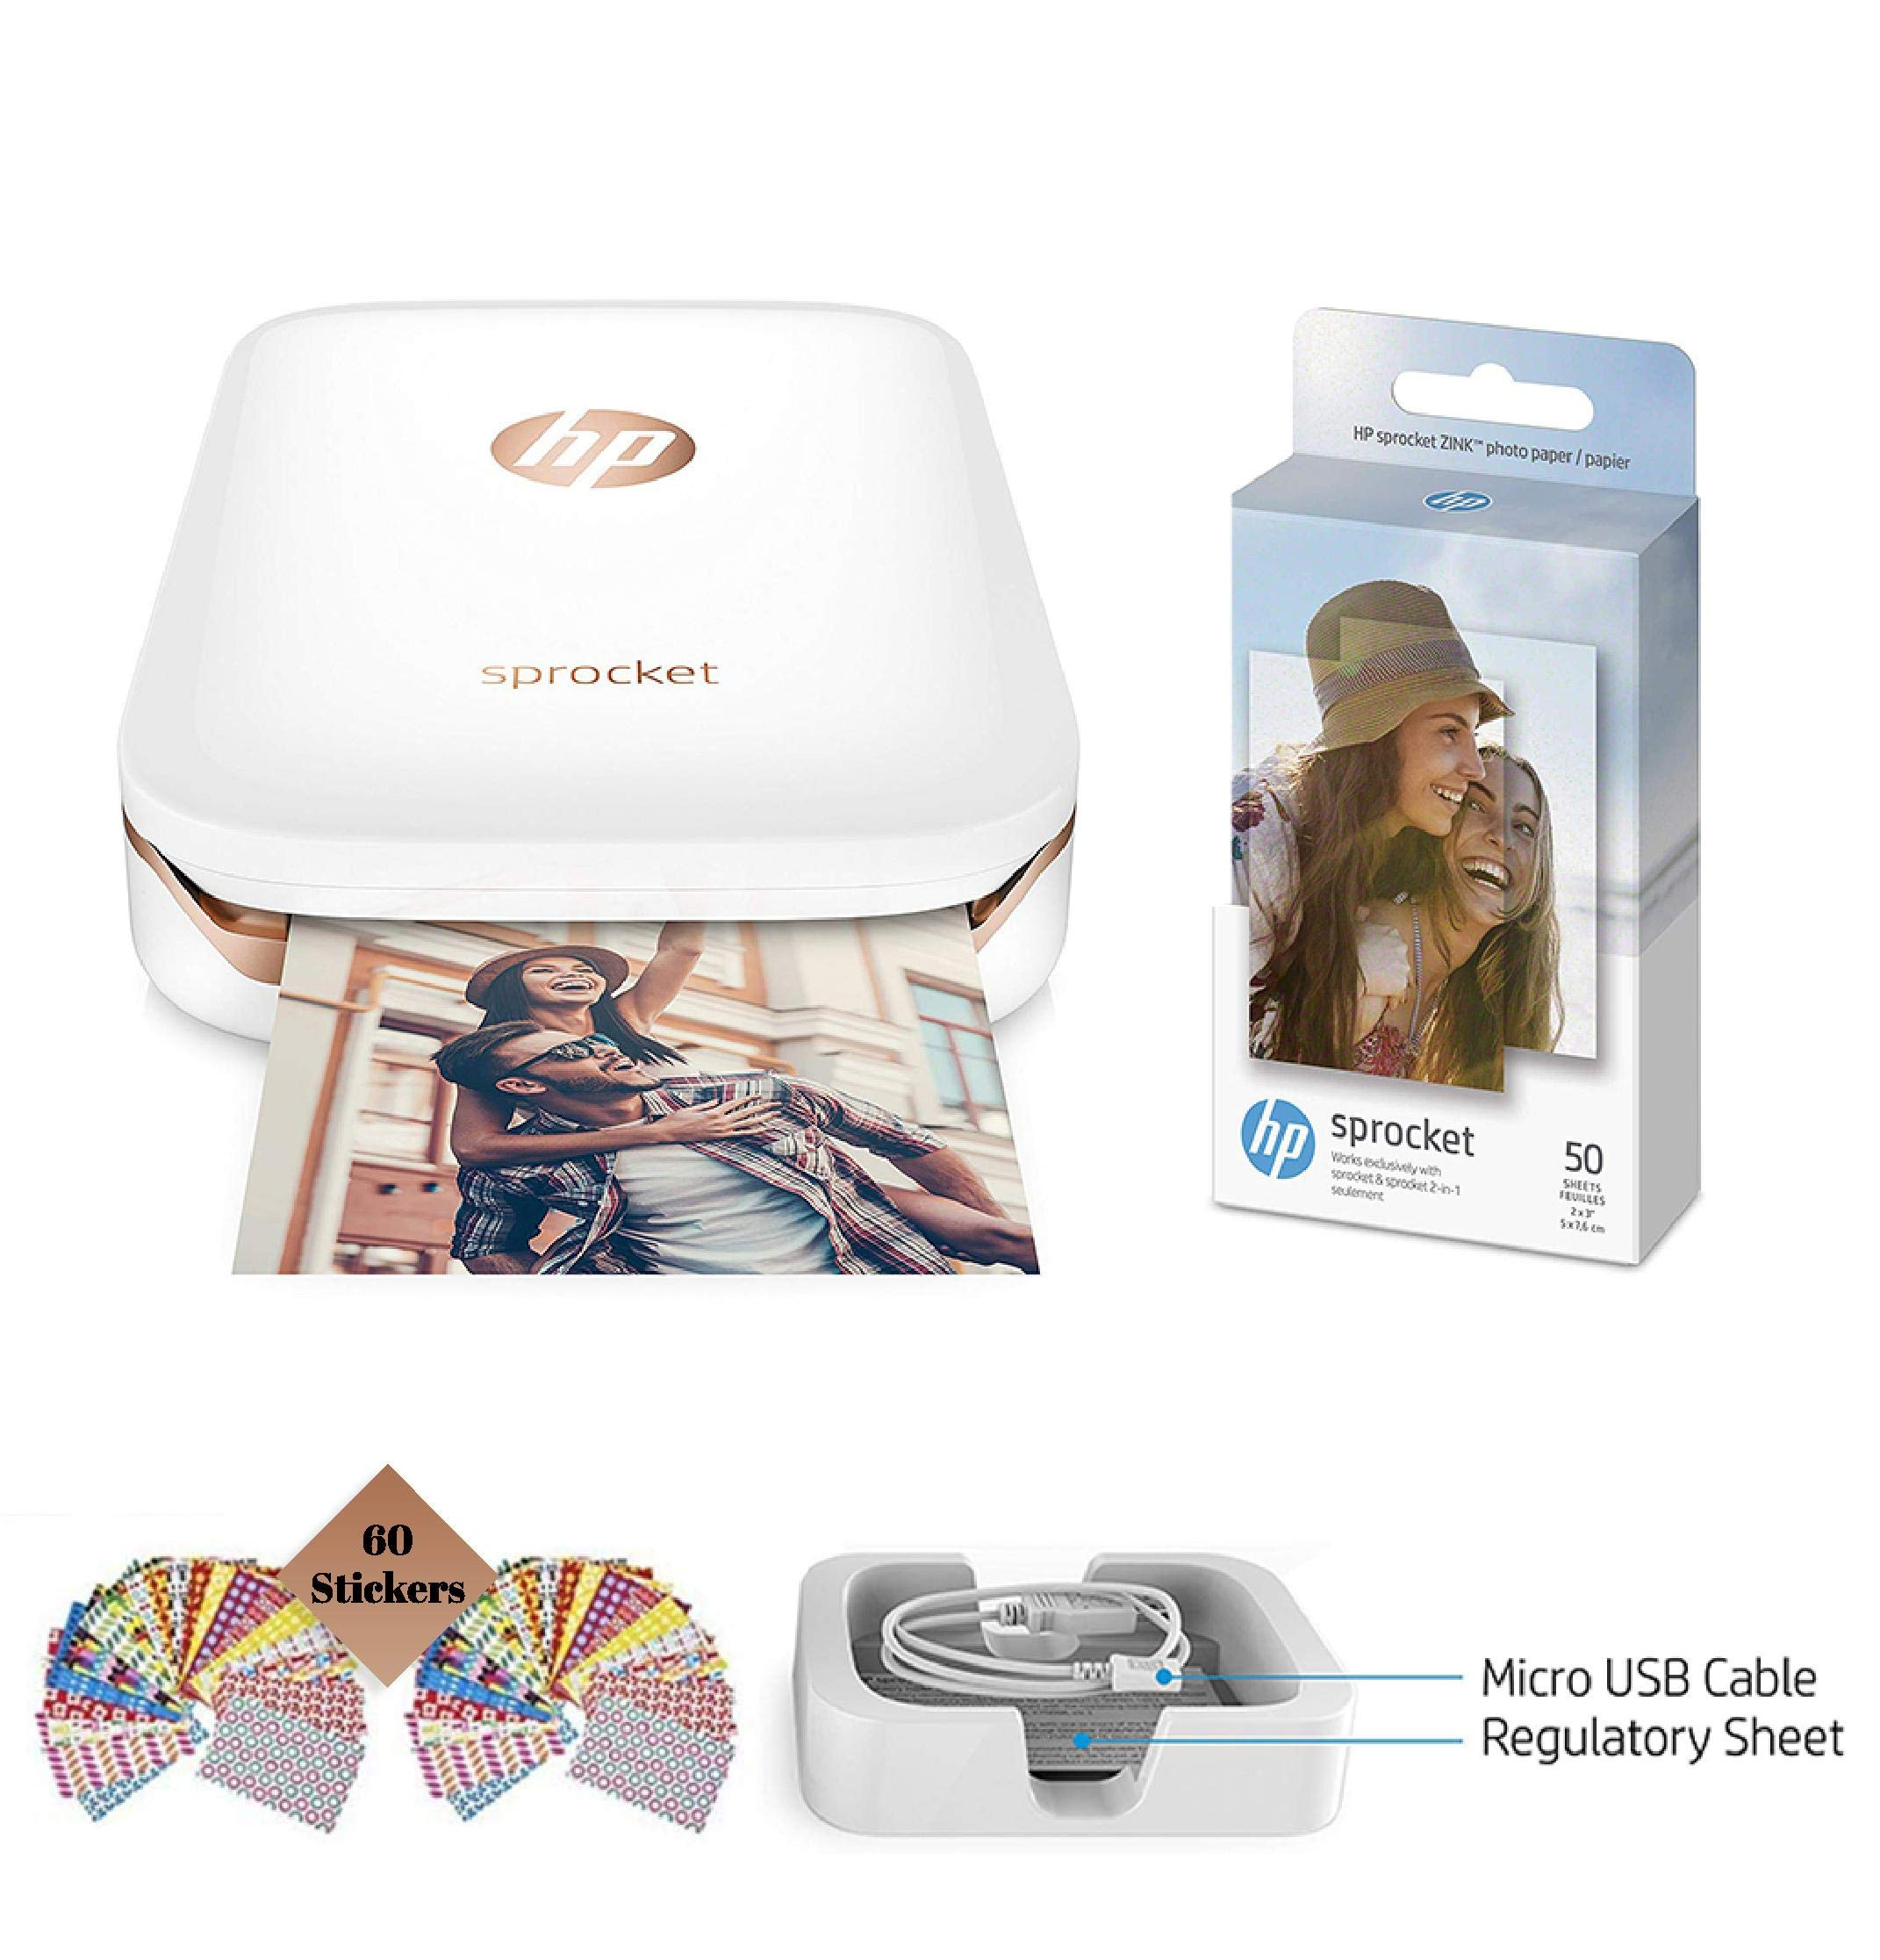 HP Sprocket Photo Printer, Print Social Media Photos on 2x3 Sticky-Backed Paper (White) + Photo Paper (60 Sheets) + USB Cable + 60 Decorative Stick-On Border Frames by TUDAK